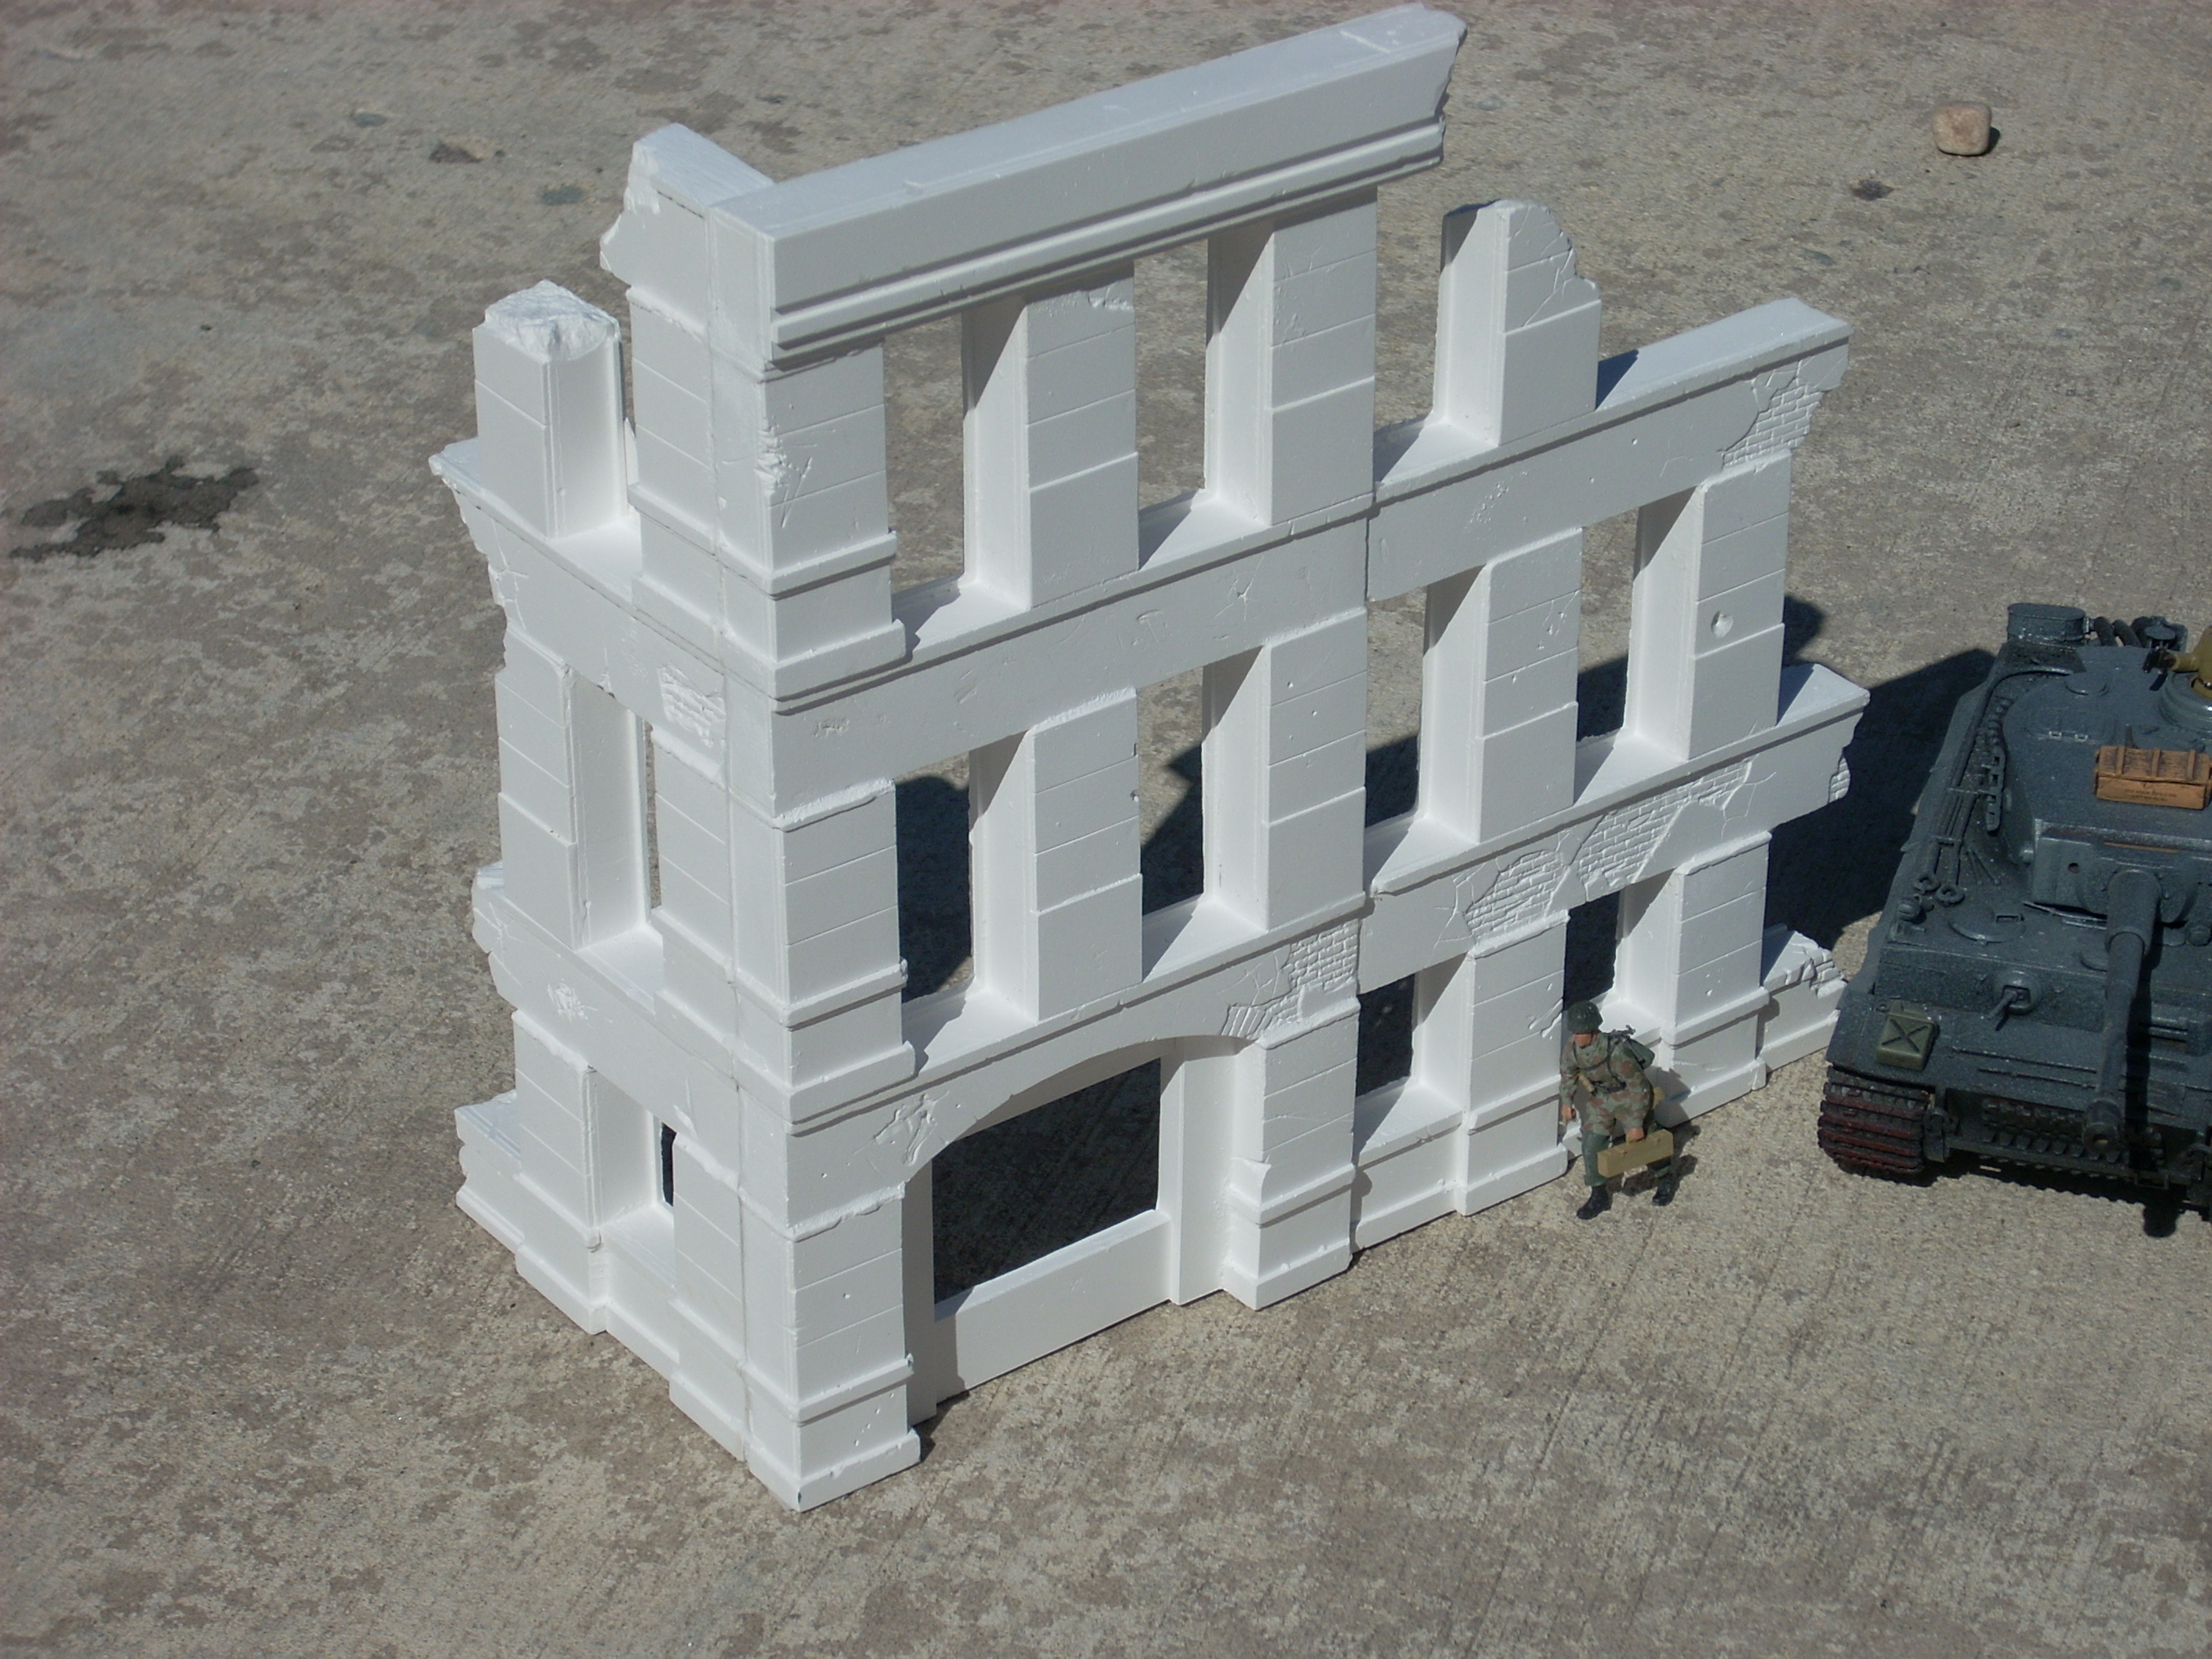 Plaster Building Dioramas Plus Blog Archive How To Assemble And Paint Hydrocal